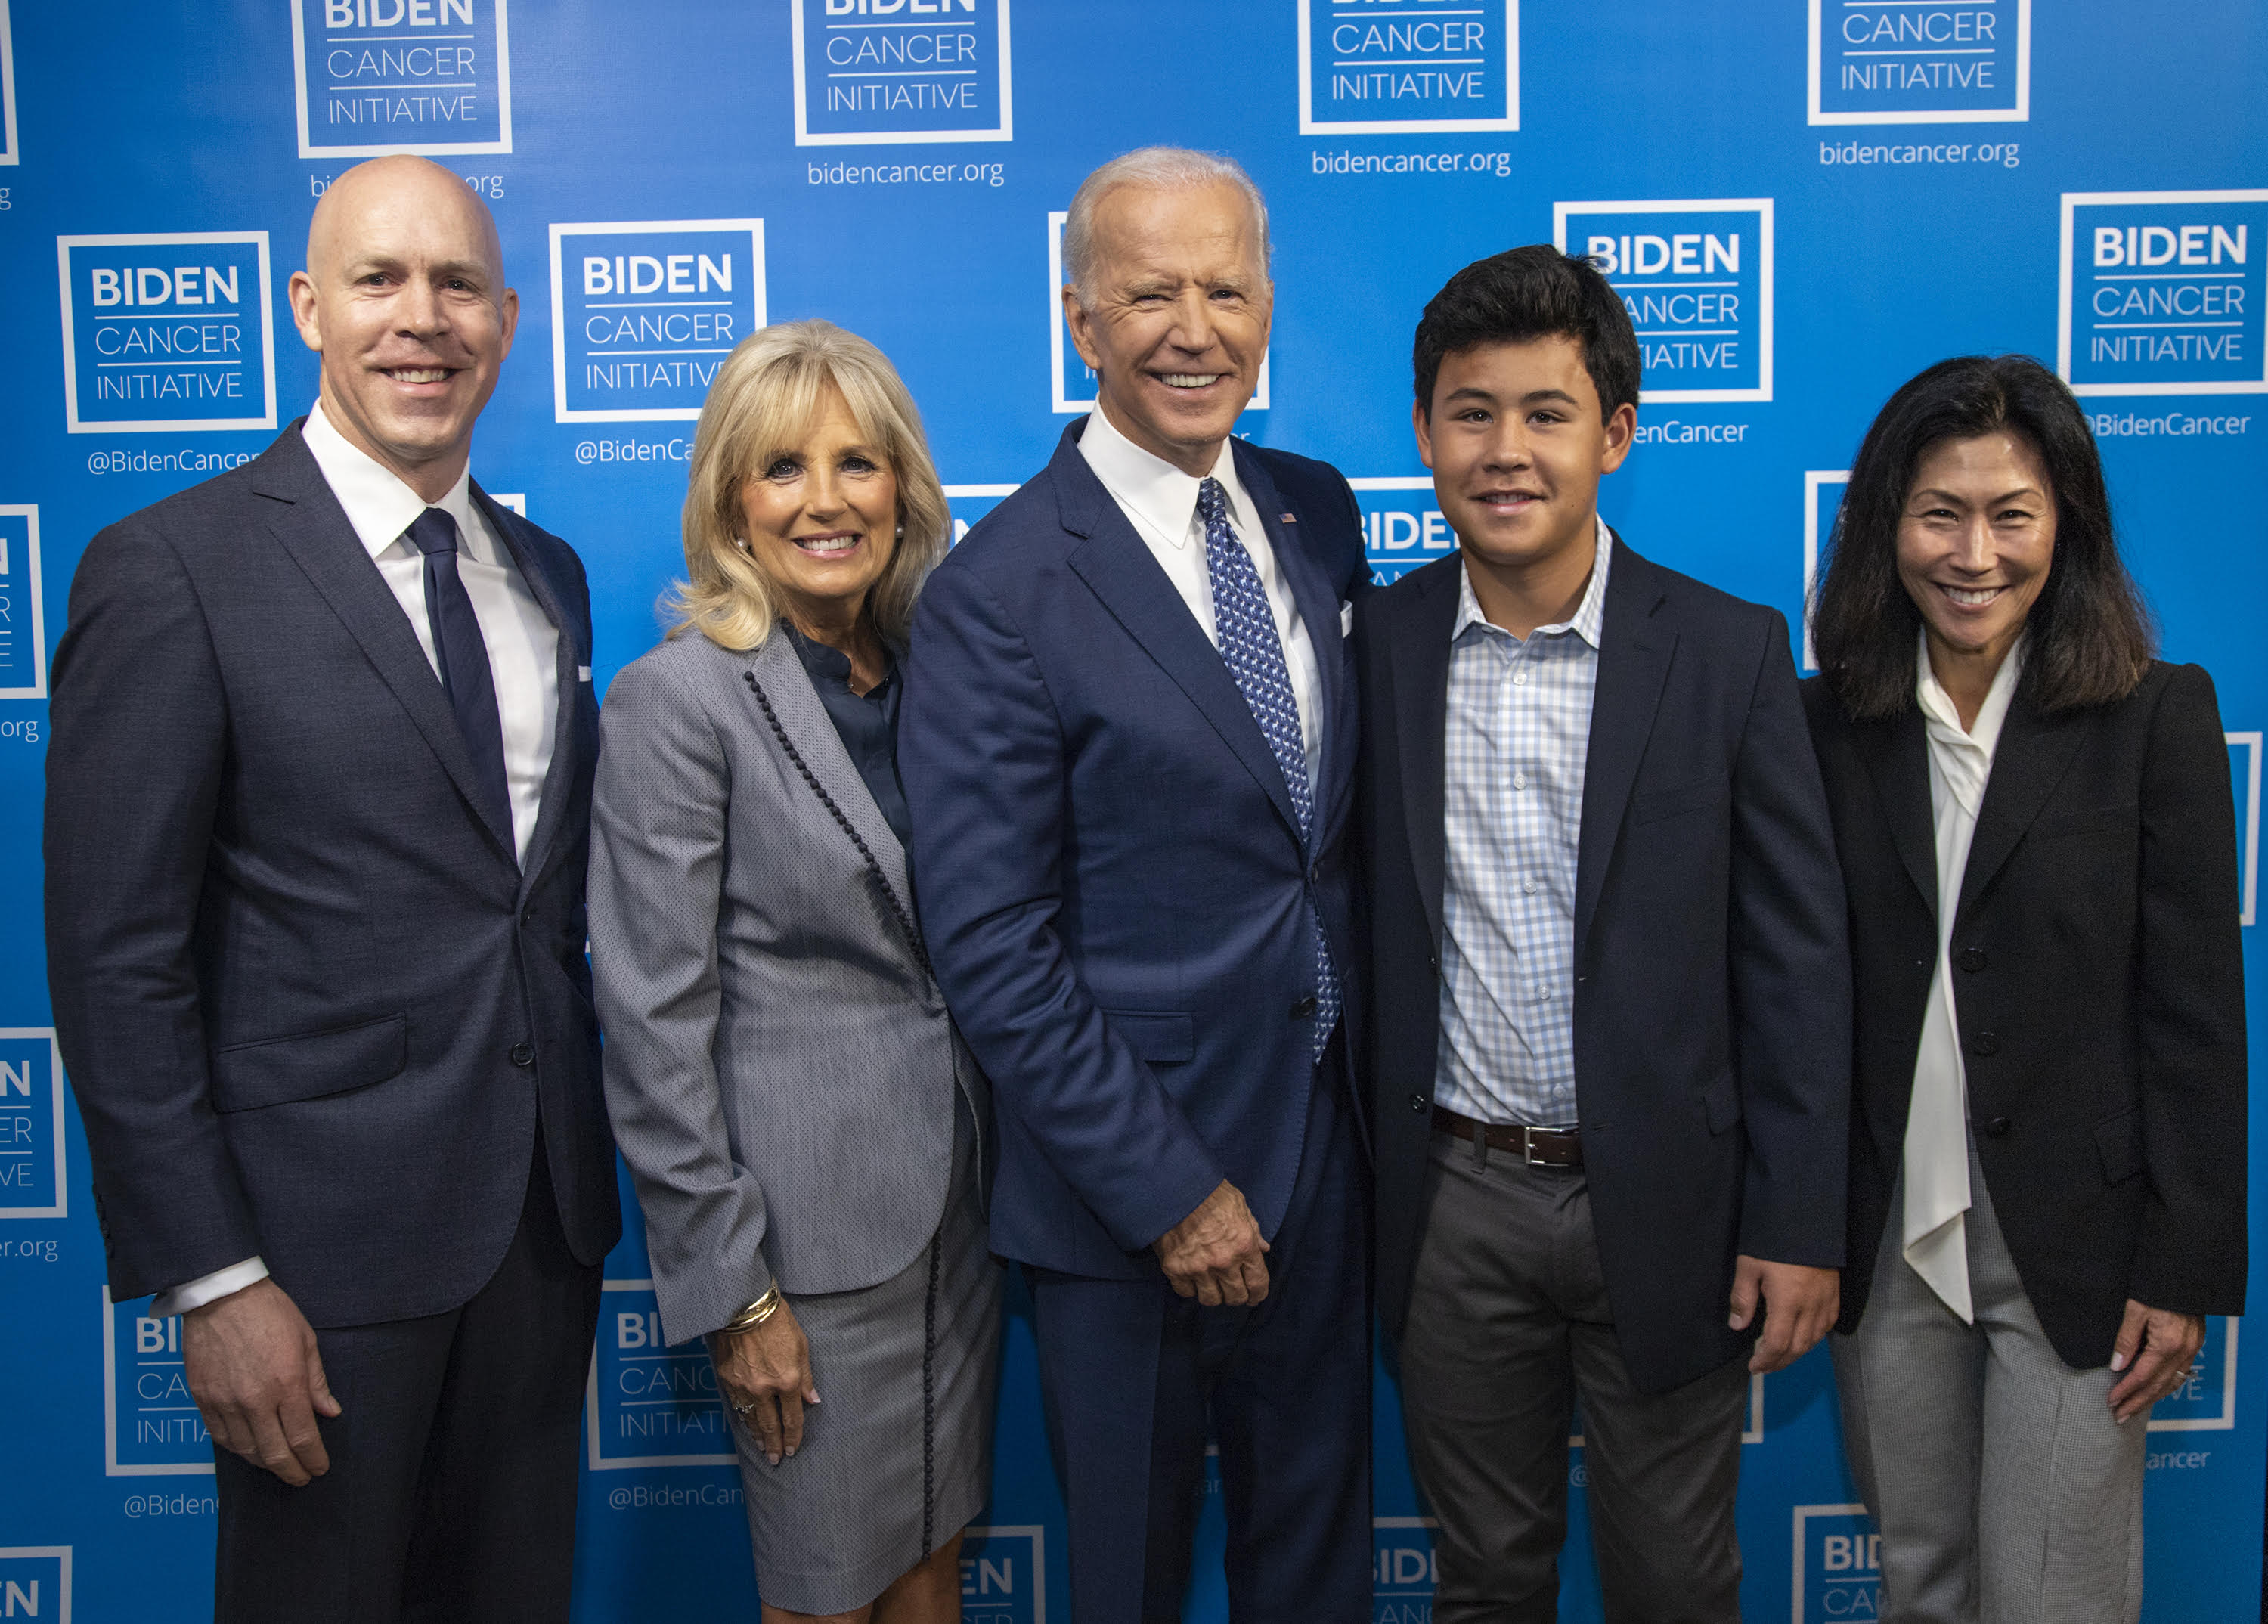 Vice President Joe Biden and Dr. Jill Biden host the national Biden Cancer Summit in Washington, D.C., on Friday September 21, 2018.